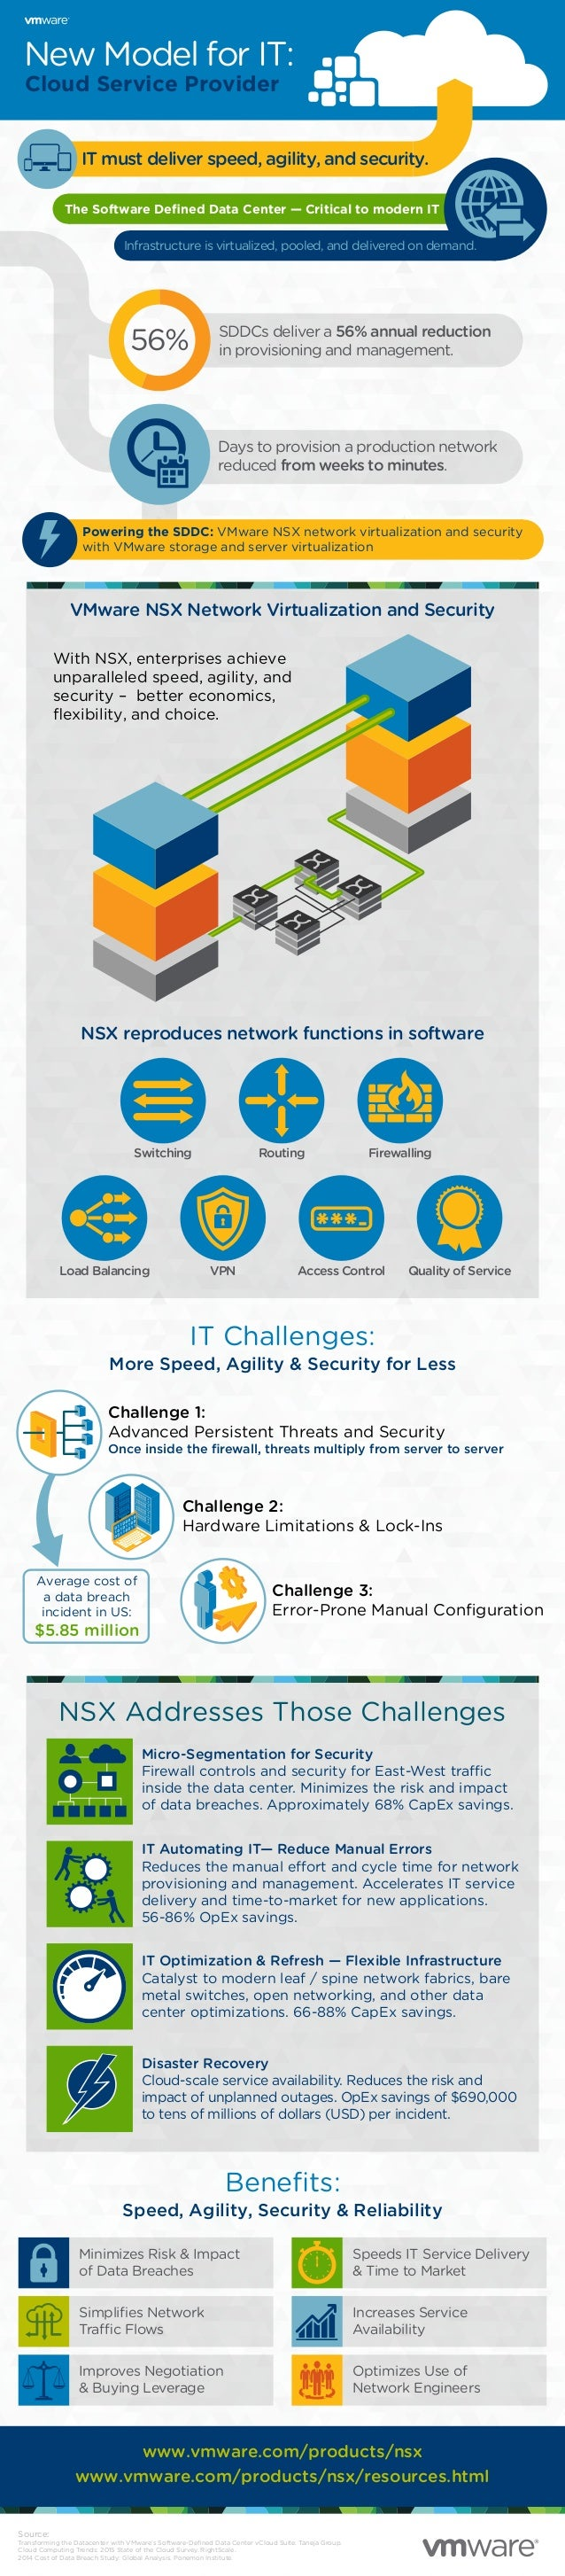 www.vmware.com/products/nsx www.vmware.com/products/nsx/resources.html Source: Transforming the Datacenter with VMware's S...